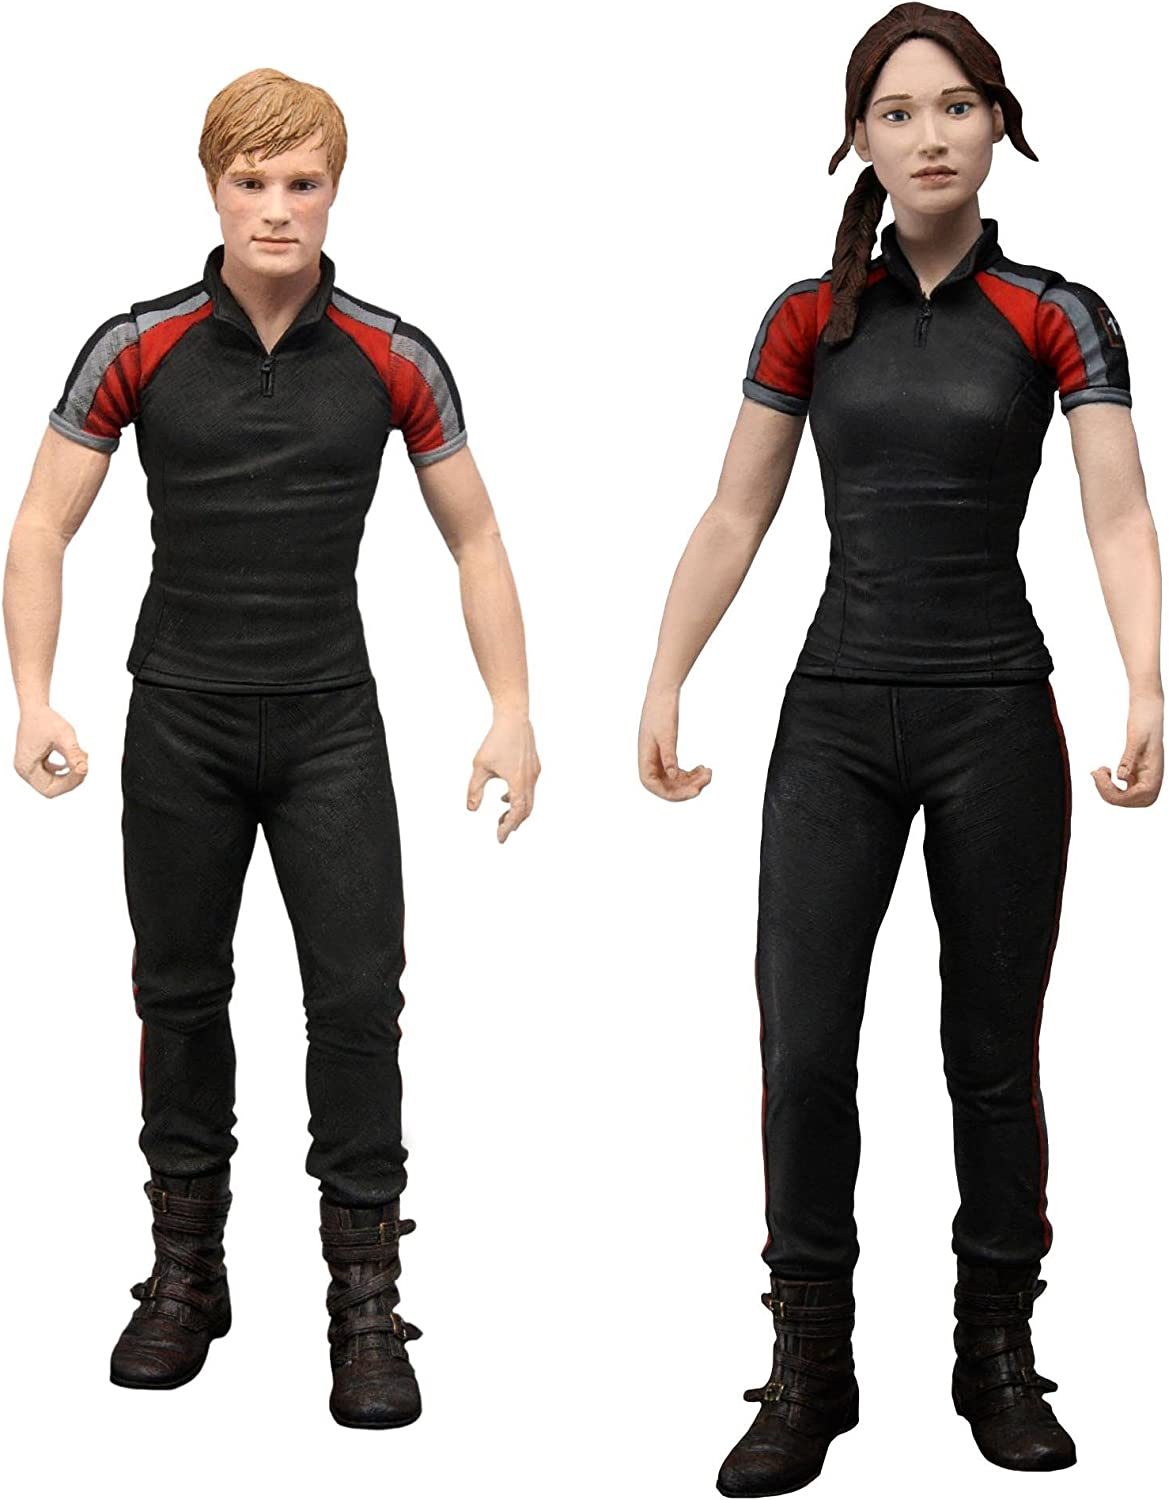 Neca - The Hunger Games Movie Series 2 Action Figure Case 18 cm (14)